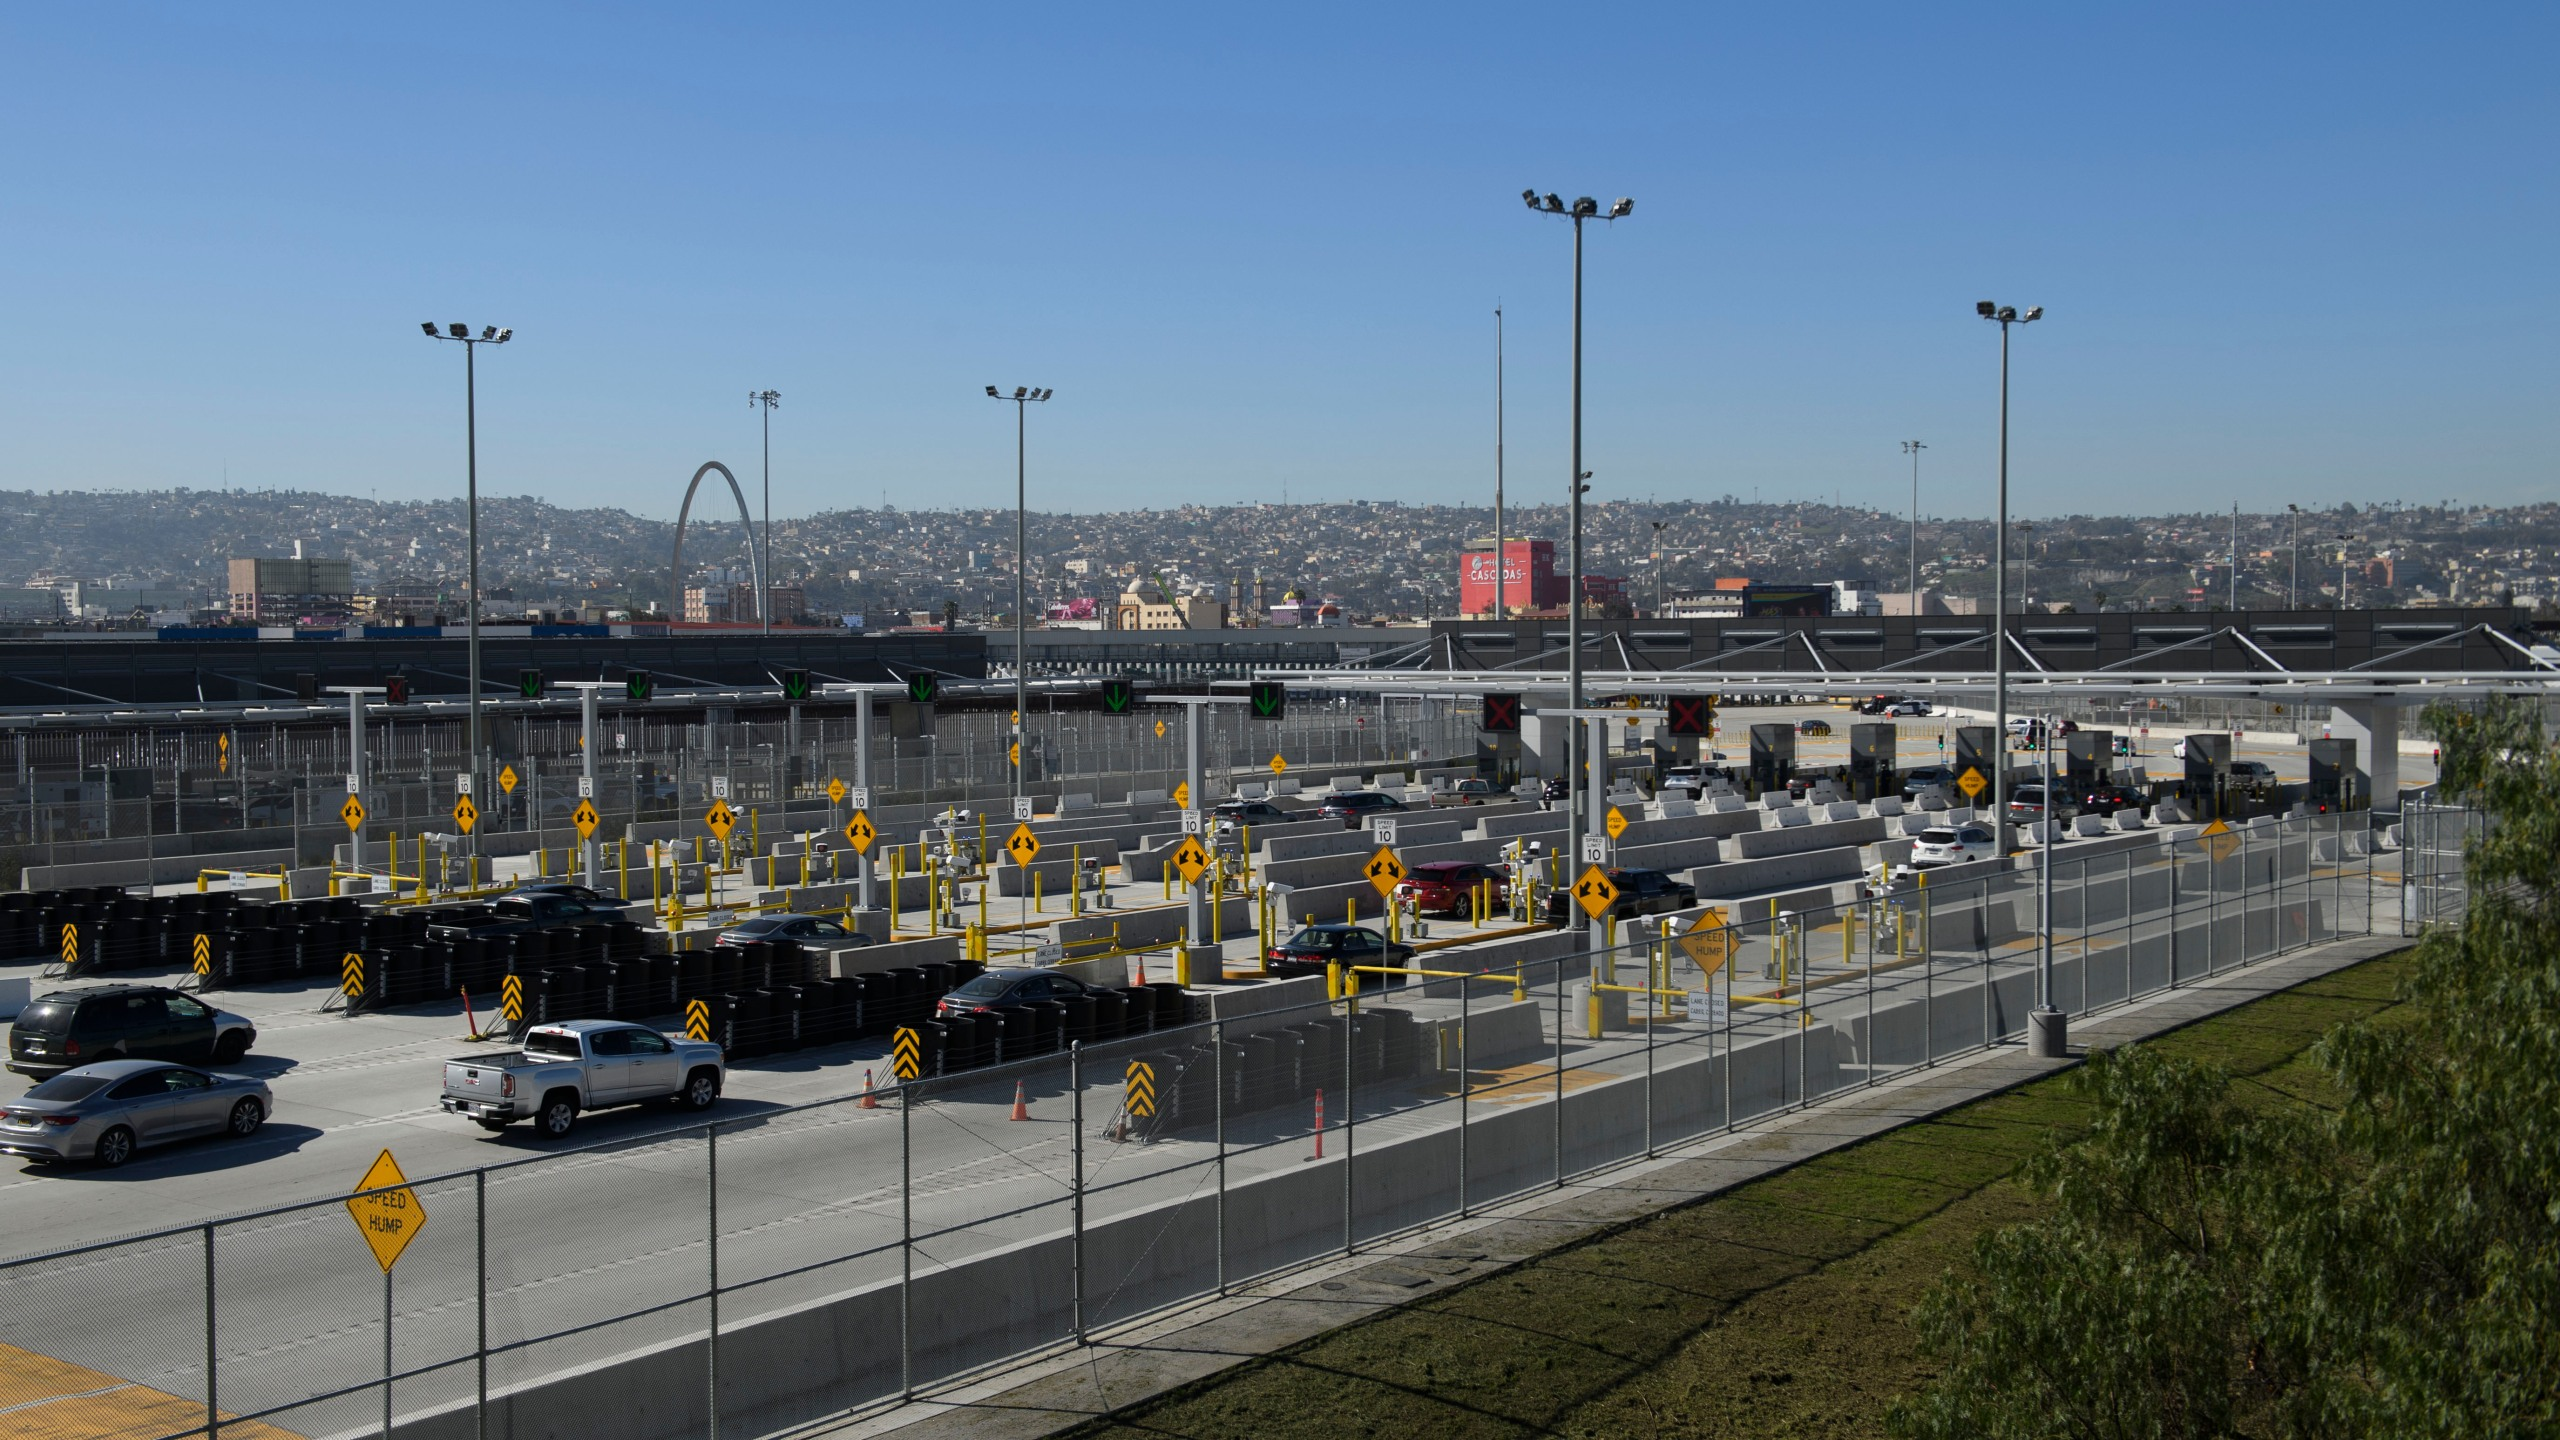 Vehicles enter a border checkpoint at the San Ysidro Port of Entry at the U.S.- Mexico border on Feb. 19, 2021 in San Diego. (PATRICK T. FALLON/AFP via Getty Images)